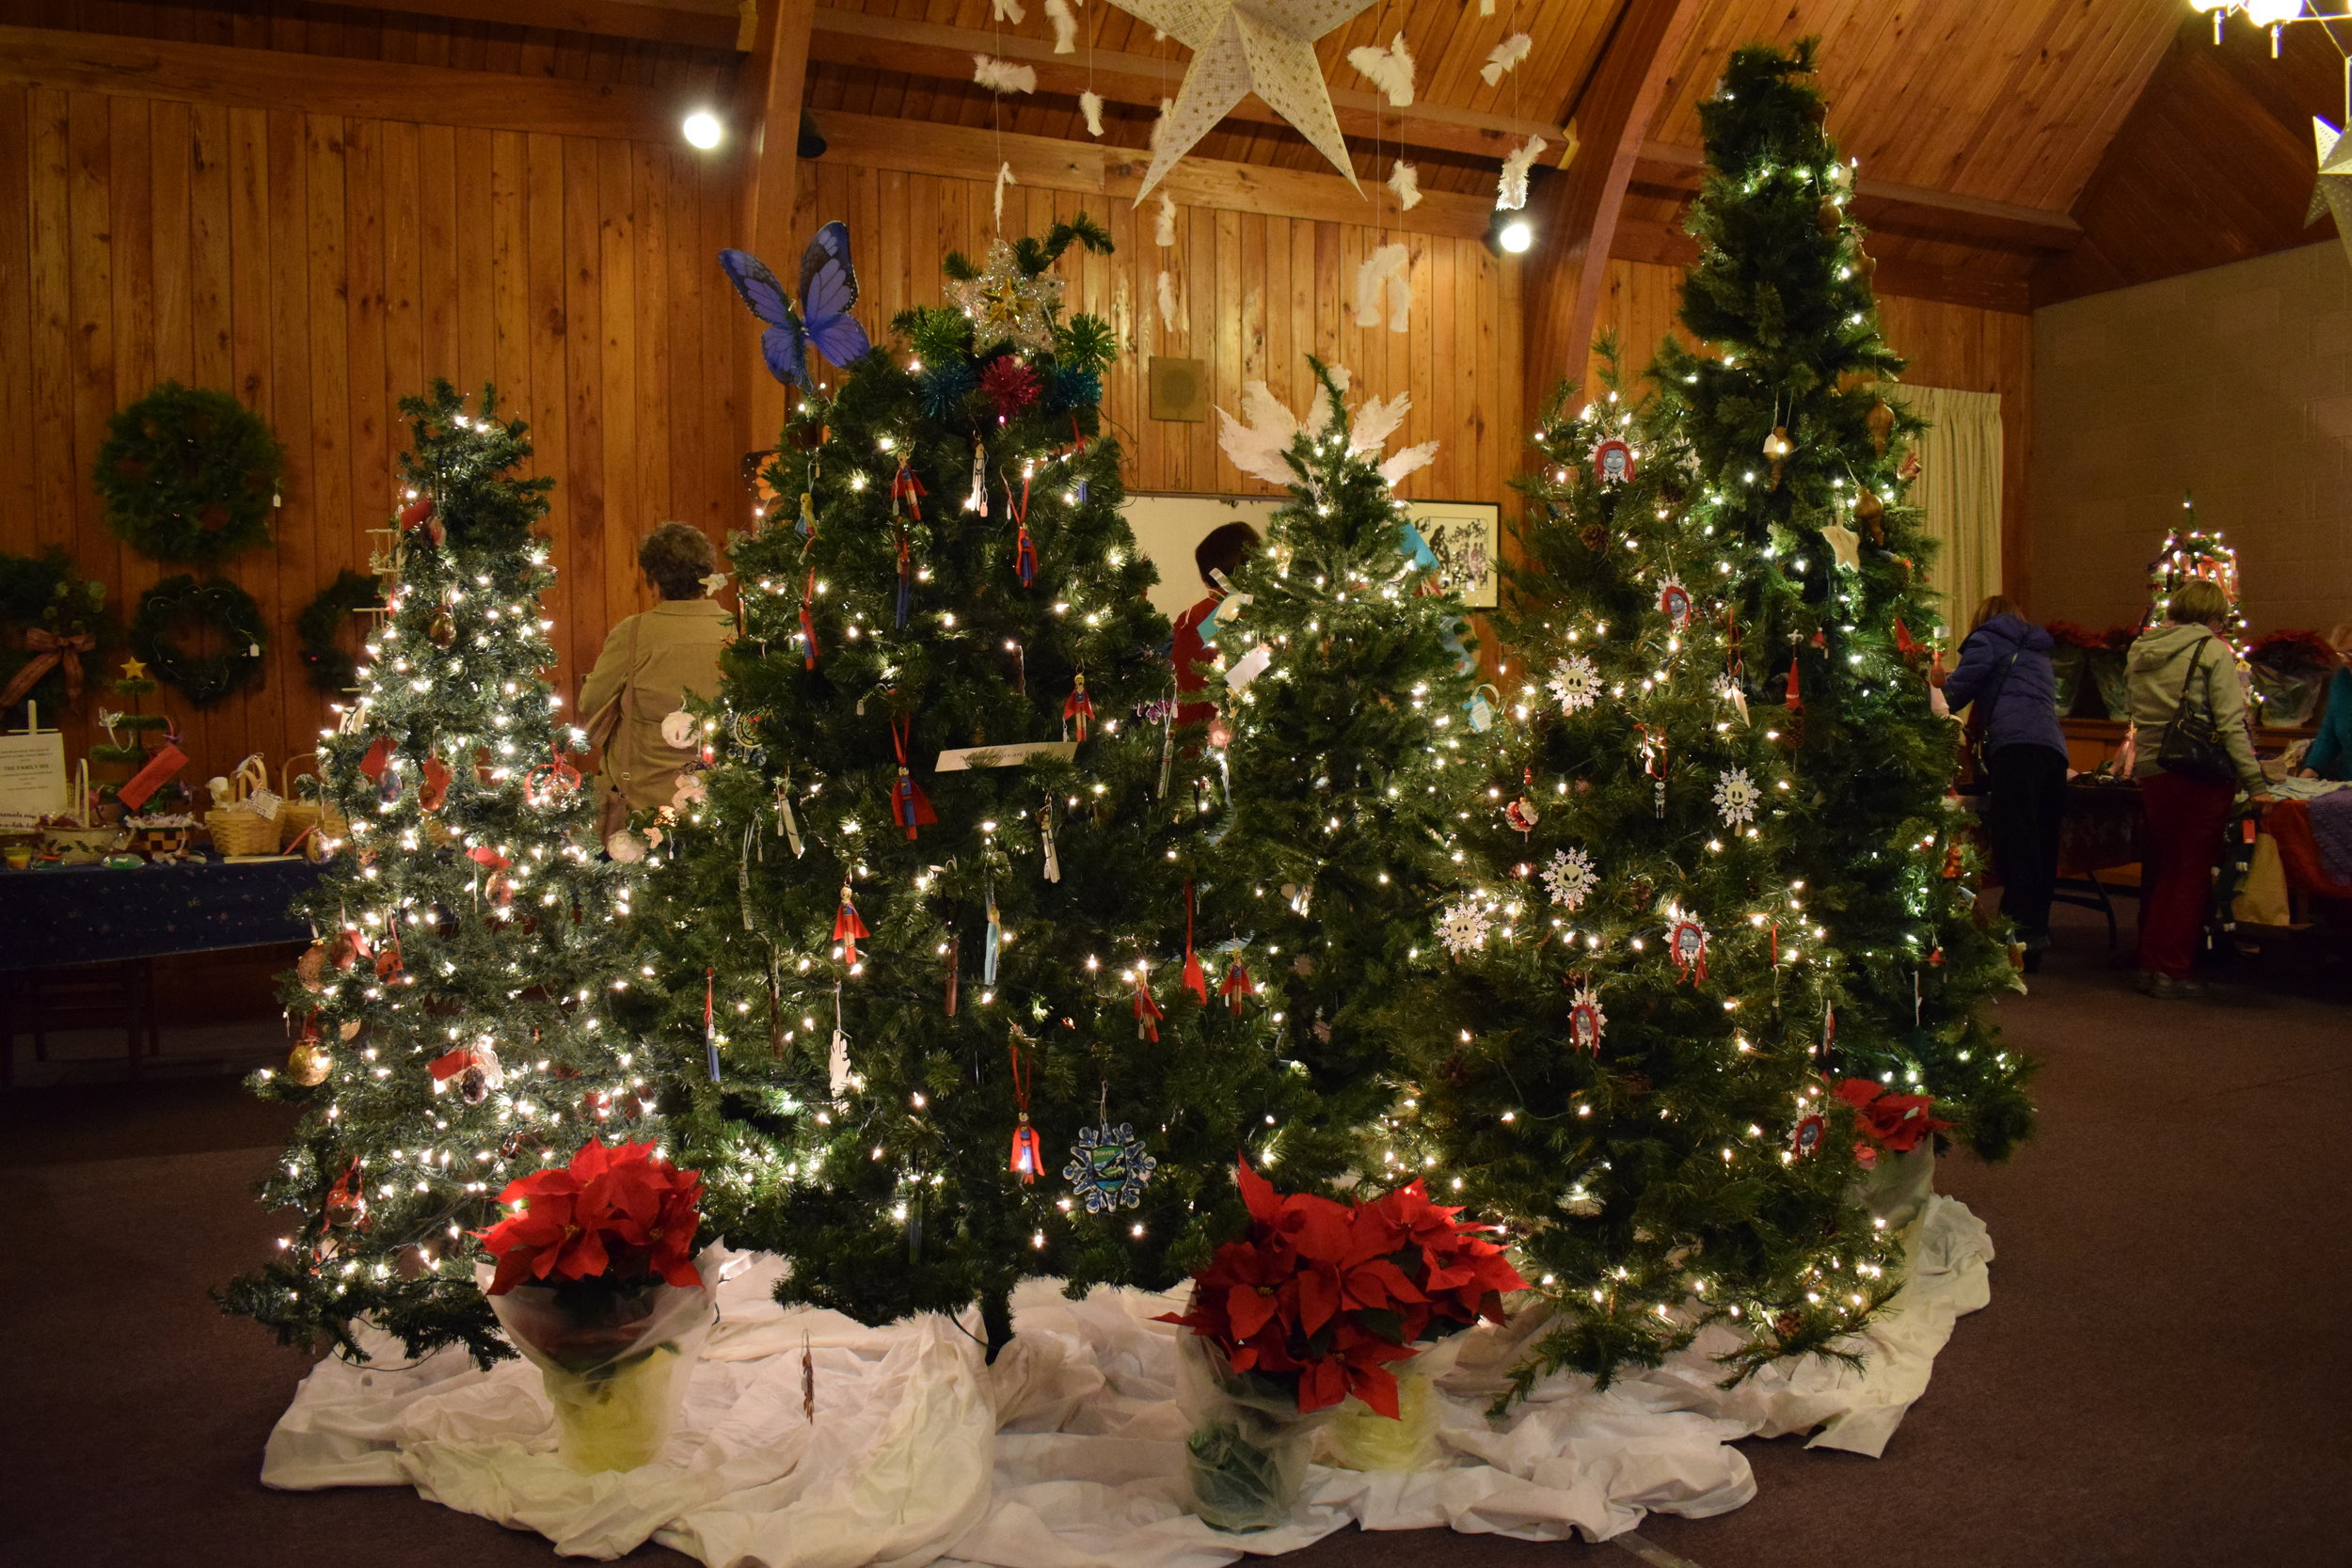 Holiday craft fair at the Reformed Church of New Paltz